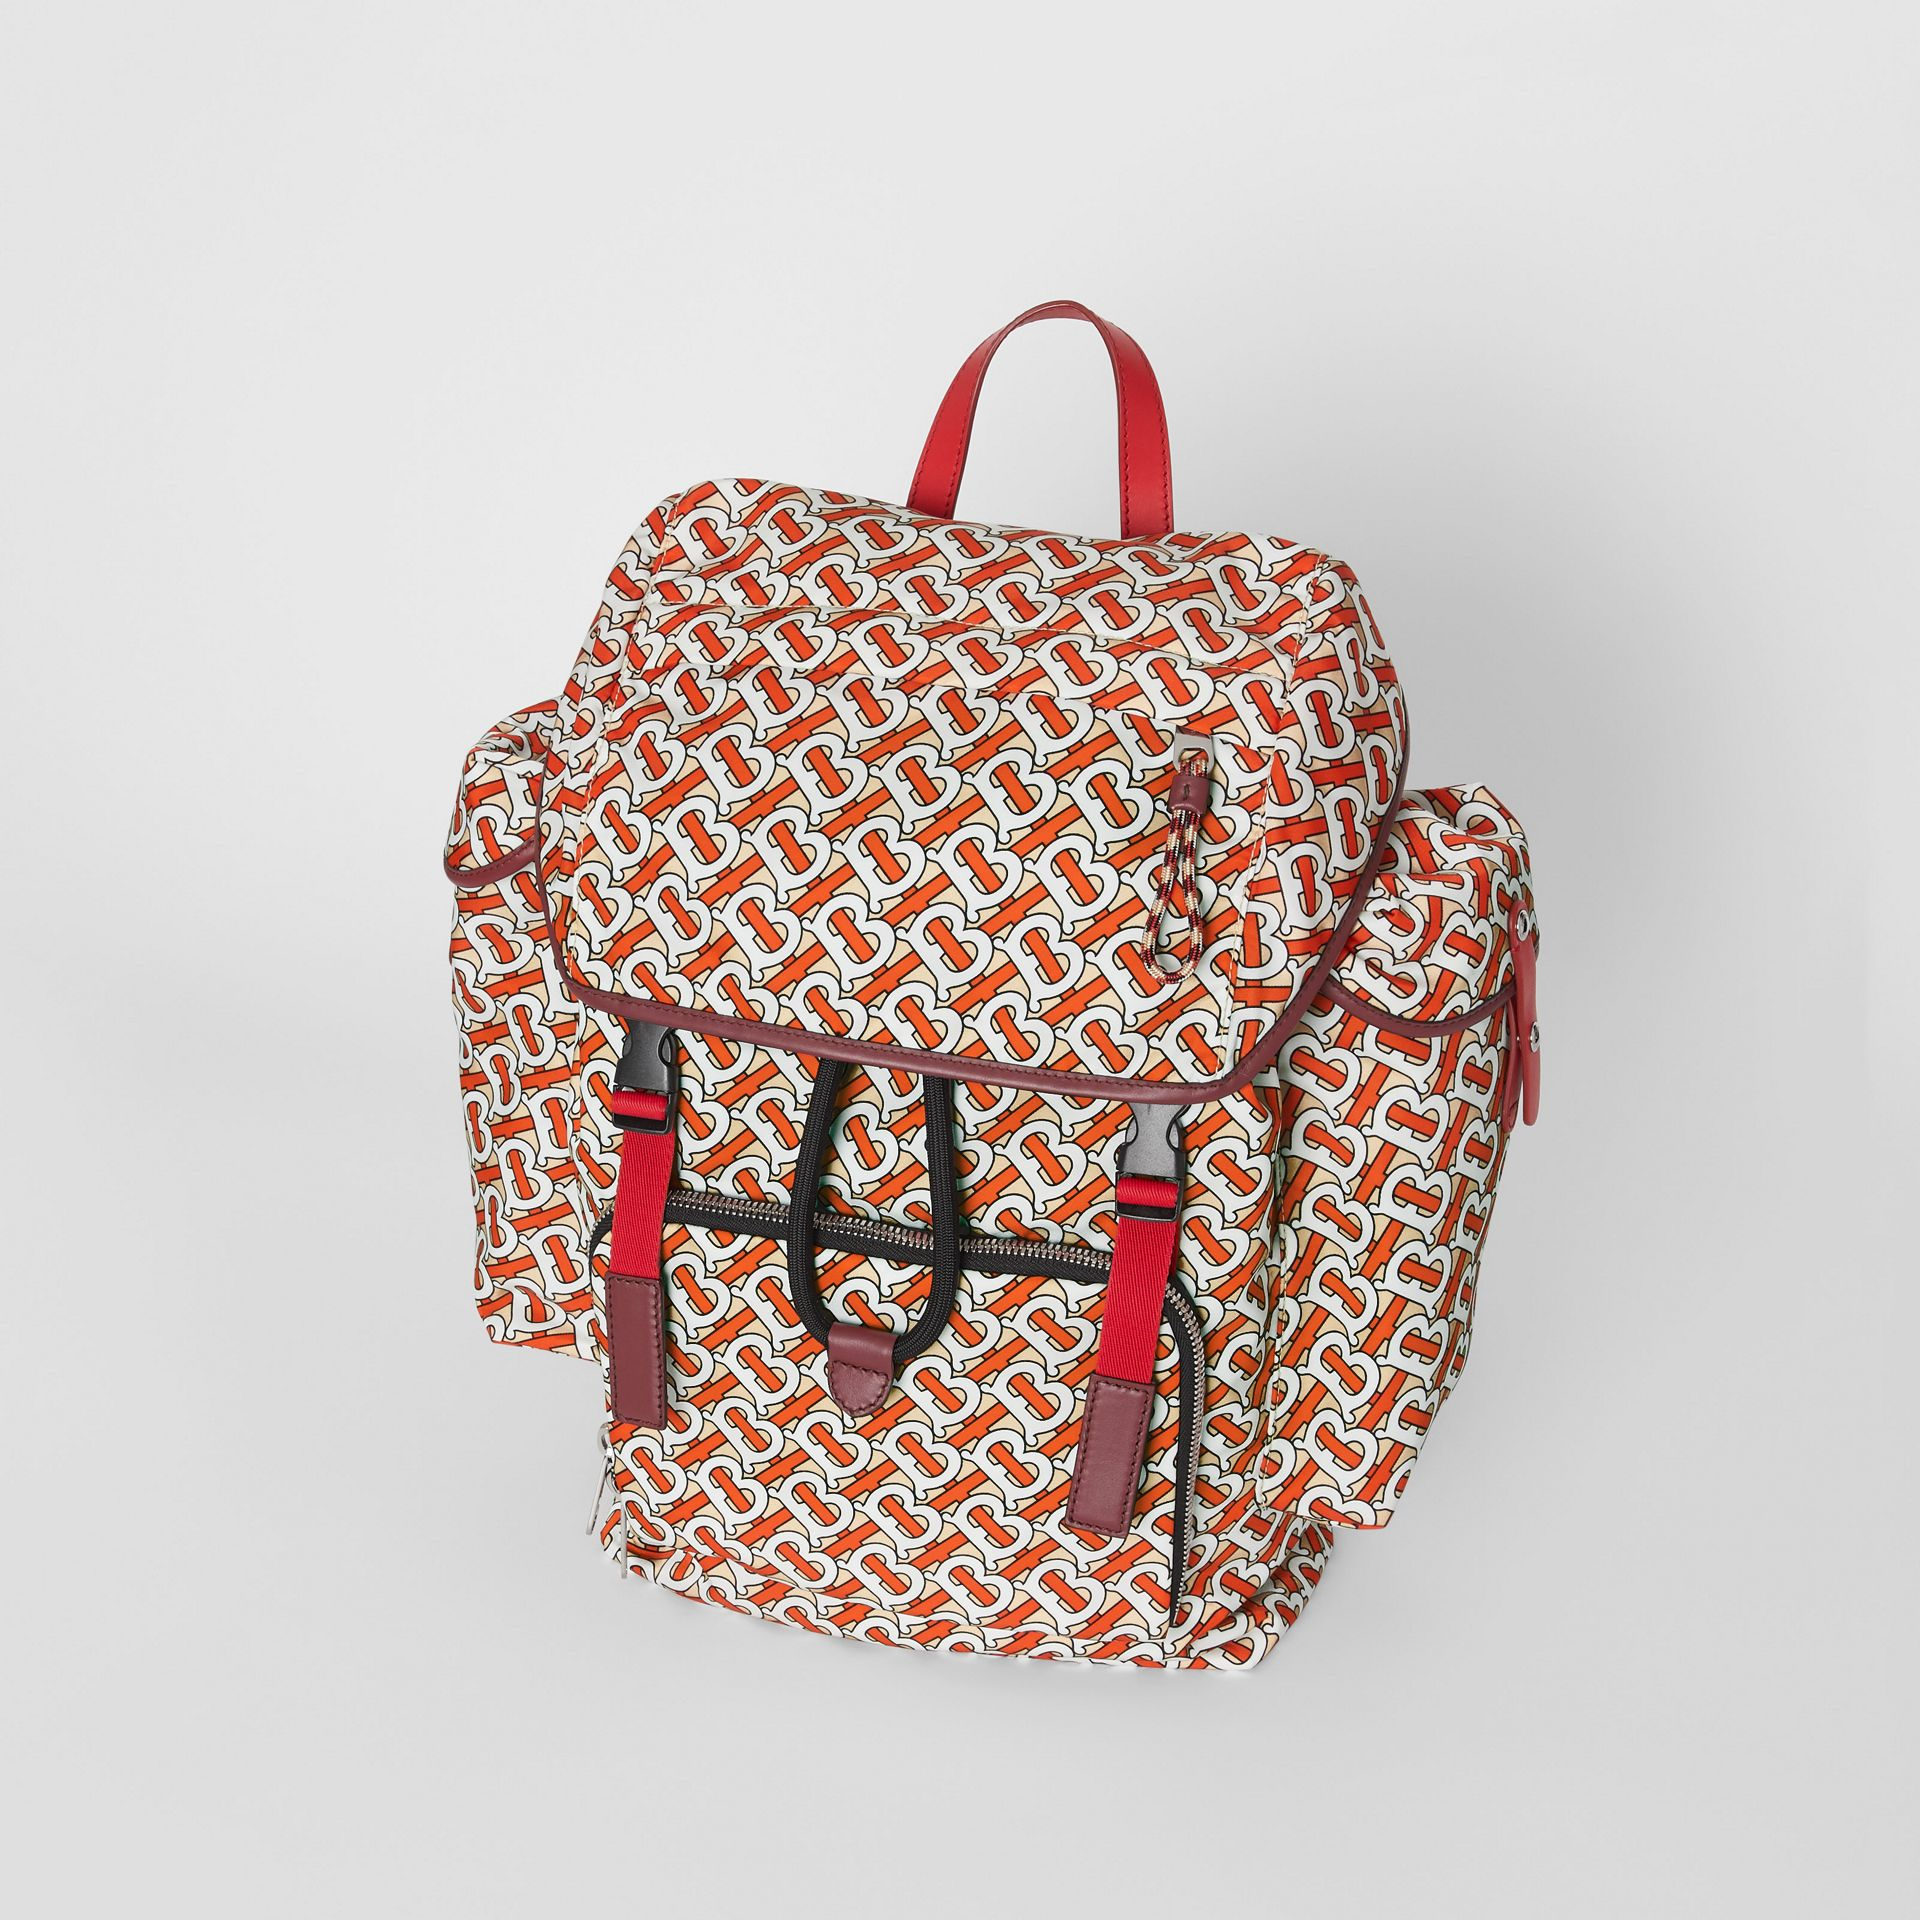 Medium Leather Trim Monogram Print Backpack in Vermilion - Men | Burberry United Kingdom - gallery image 3